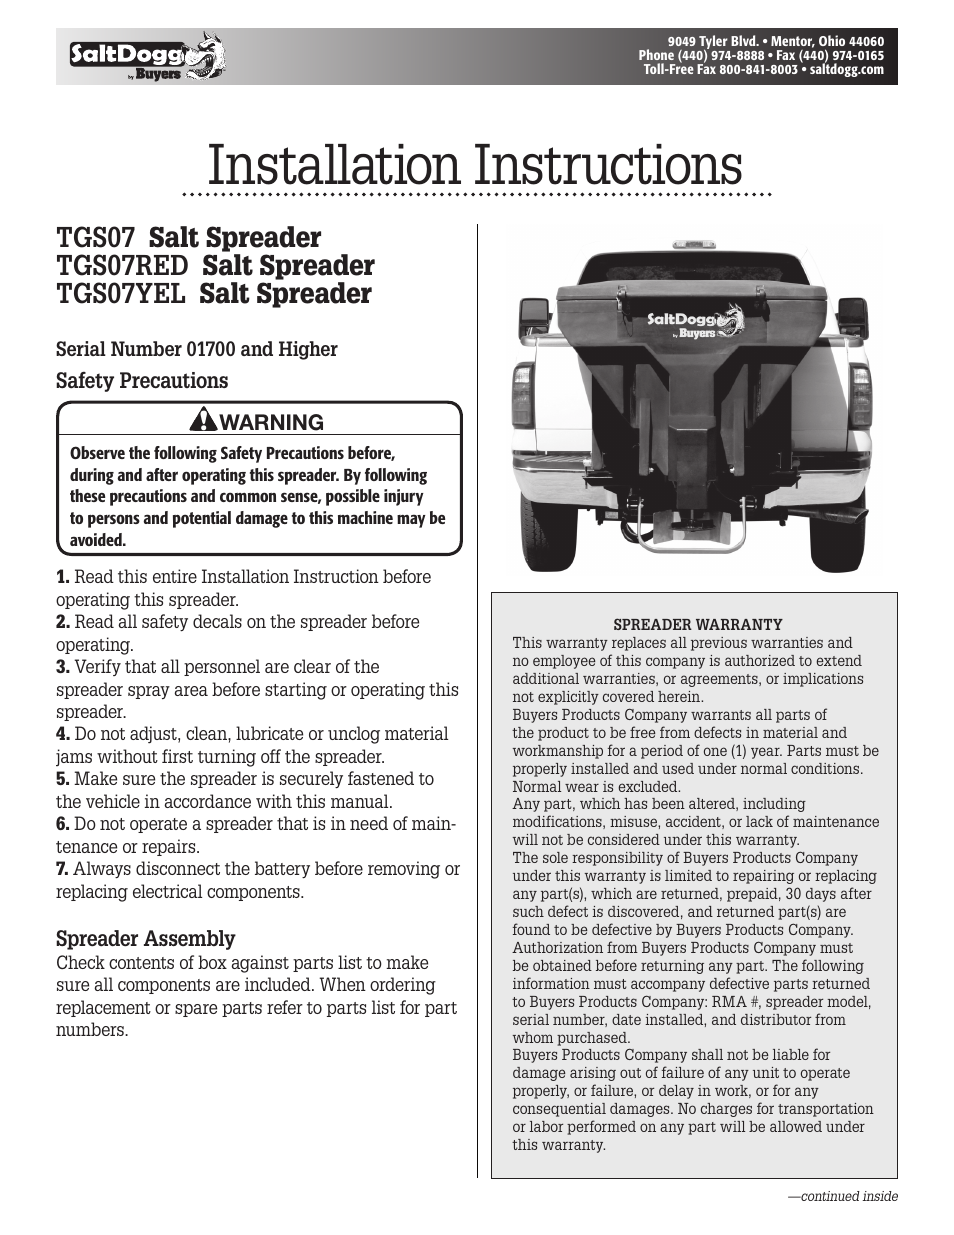 Saltdogg Tgs07yel Salt Spreader User Manual